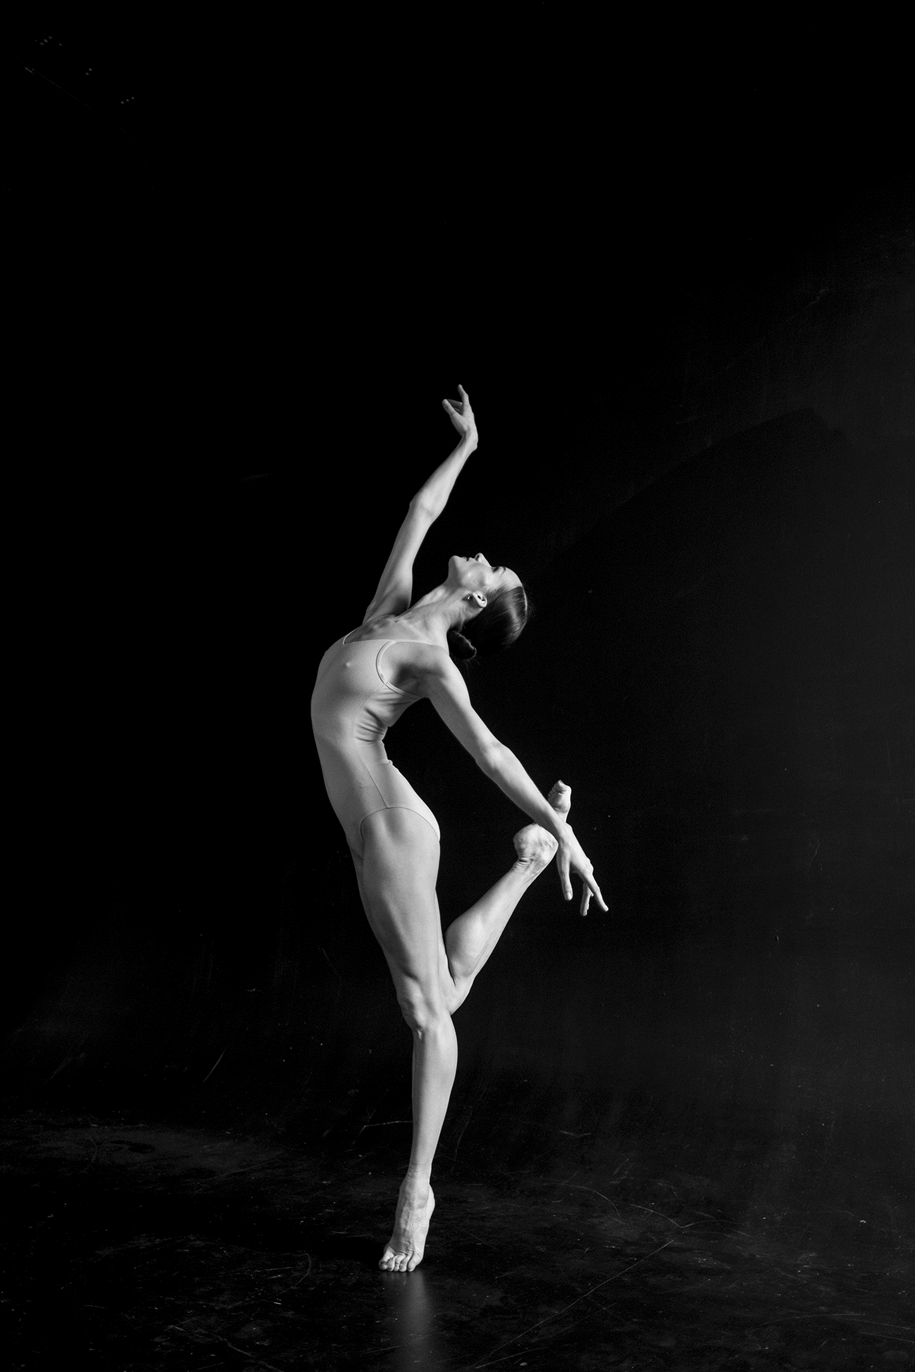 behind-the-scenes-of-the-russian-ballet-photos-ballerina-dariani-volkova-13